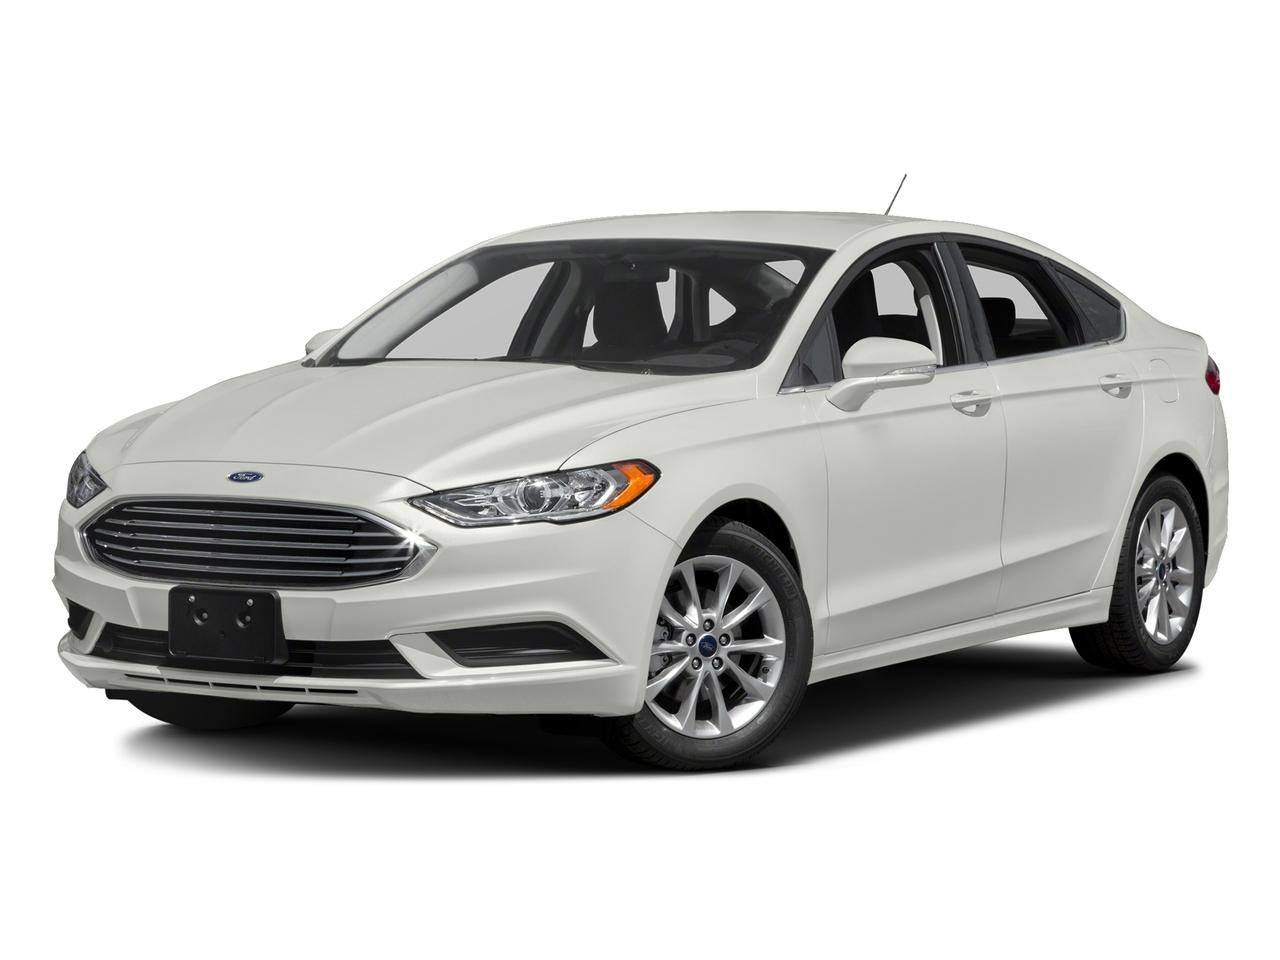 2017 Ford Fusion Vehicle Photo in Owensboro, KY 42302